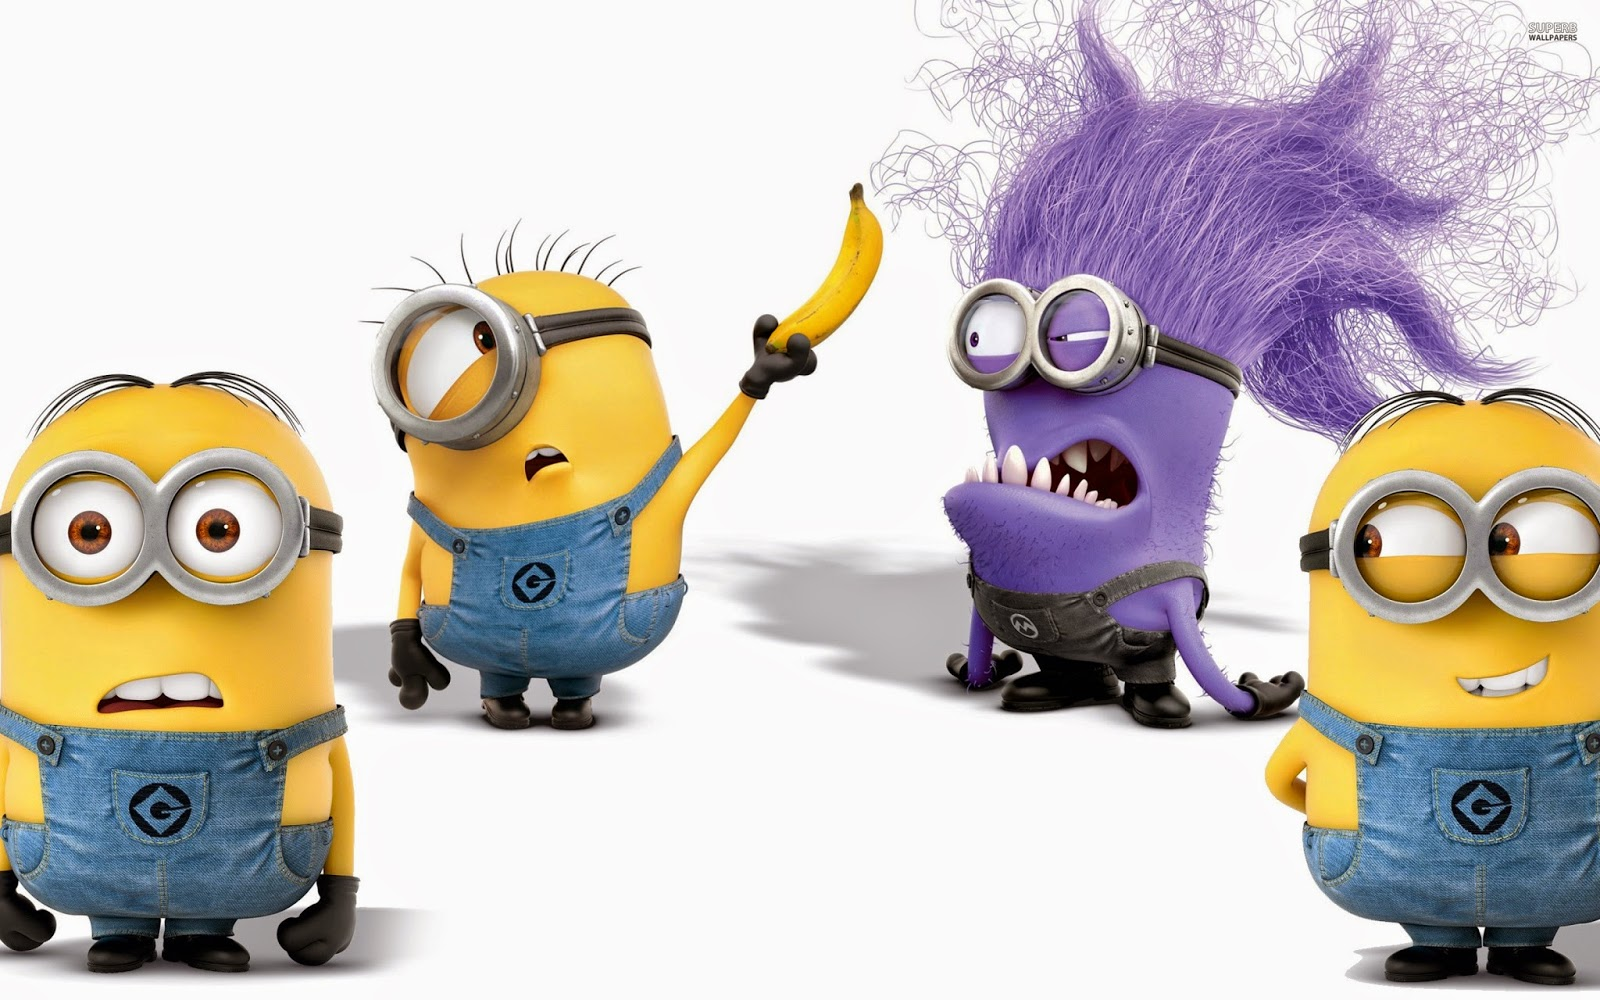 http://gallerycartoon.blogspot.com/2015/03/minions-movie-pictures-10.html